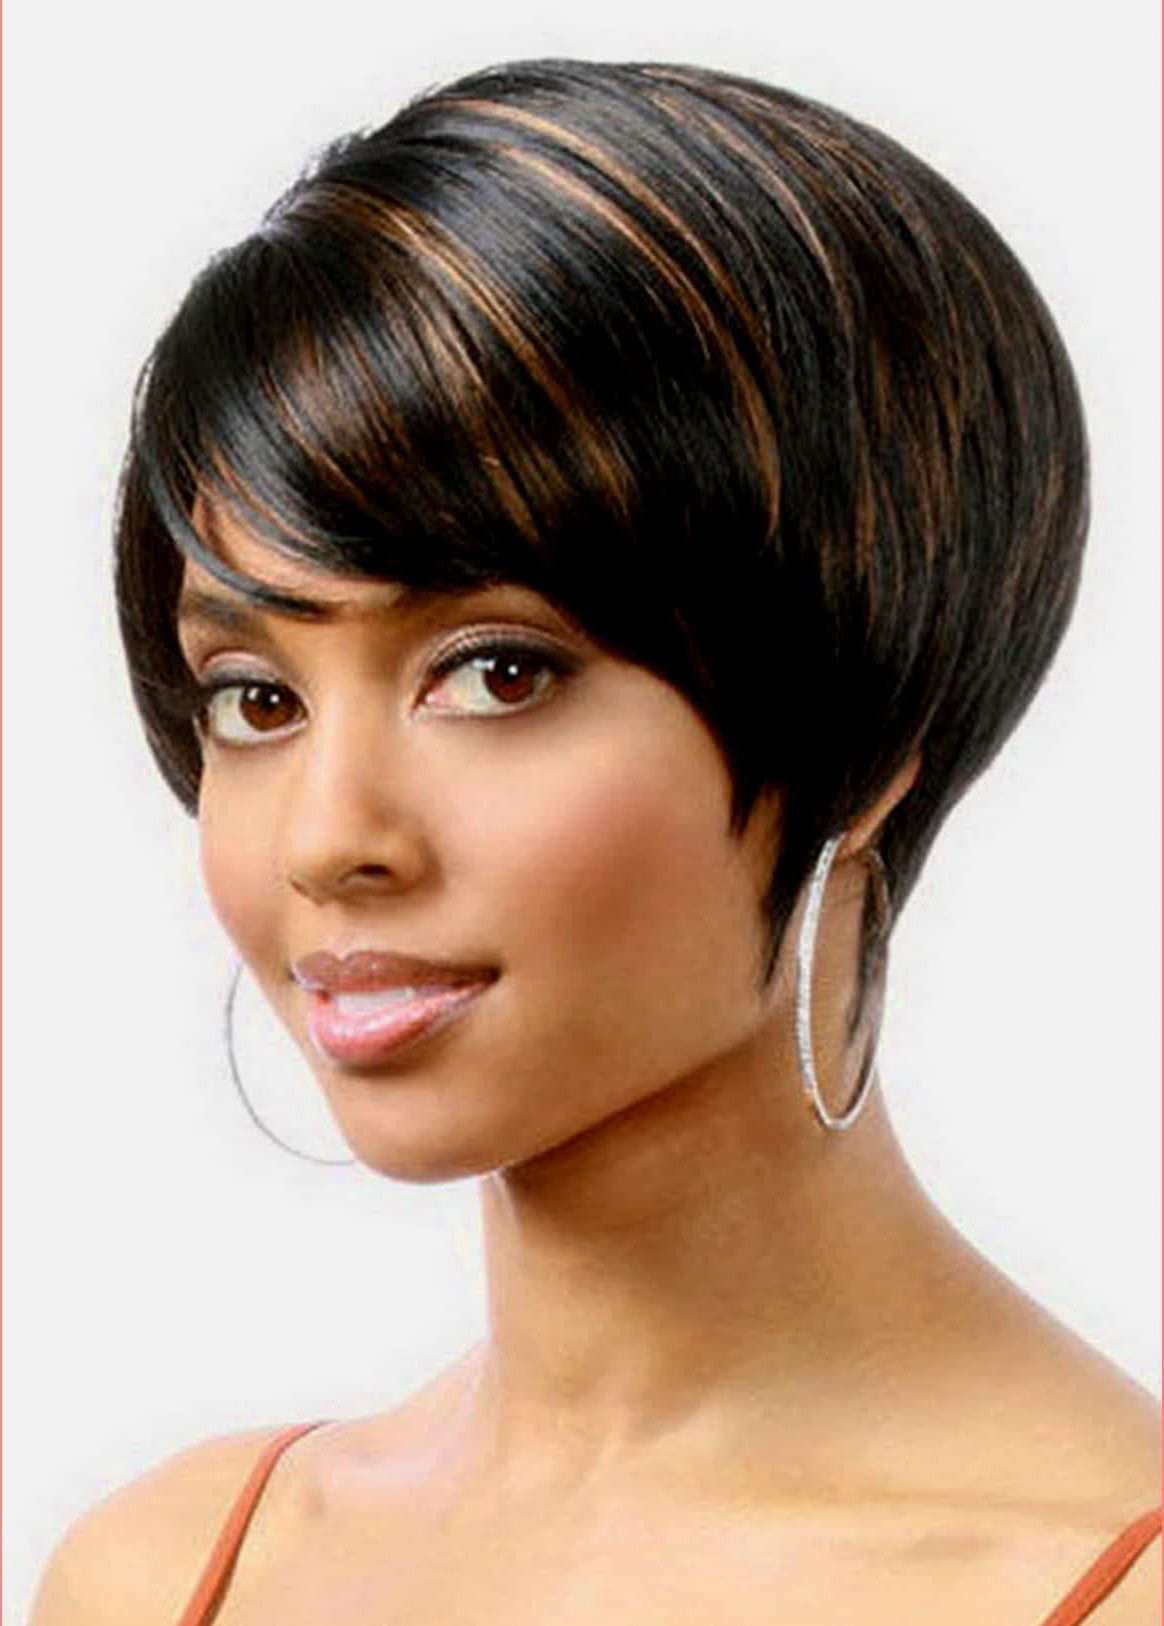 Unique Hairstyles Short Bob Hairstyles Black Women – Best Throughout Bob Short Hairstyles For Black Women (View 13 of 25)